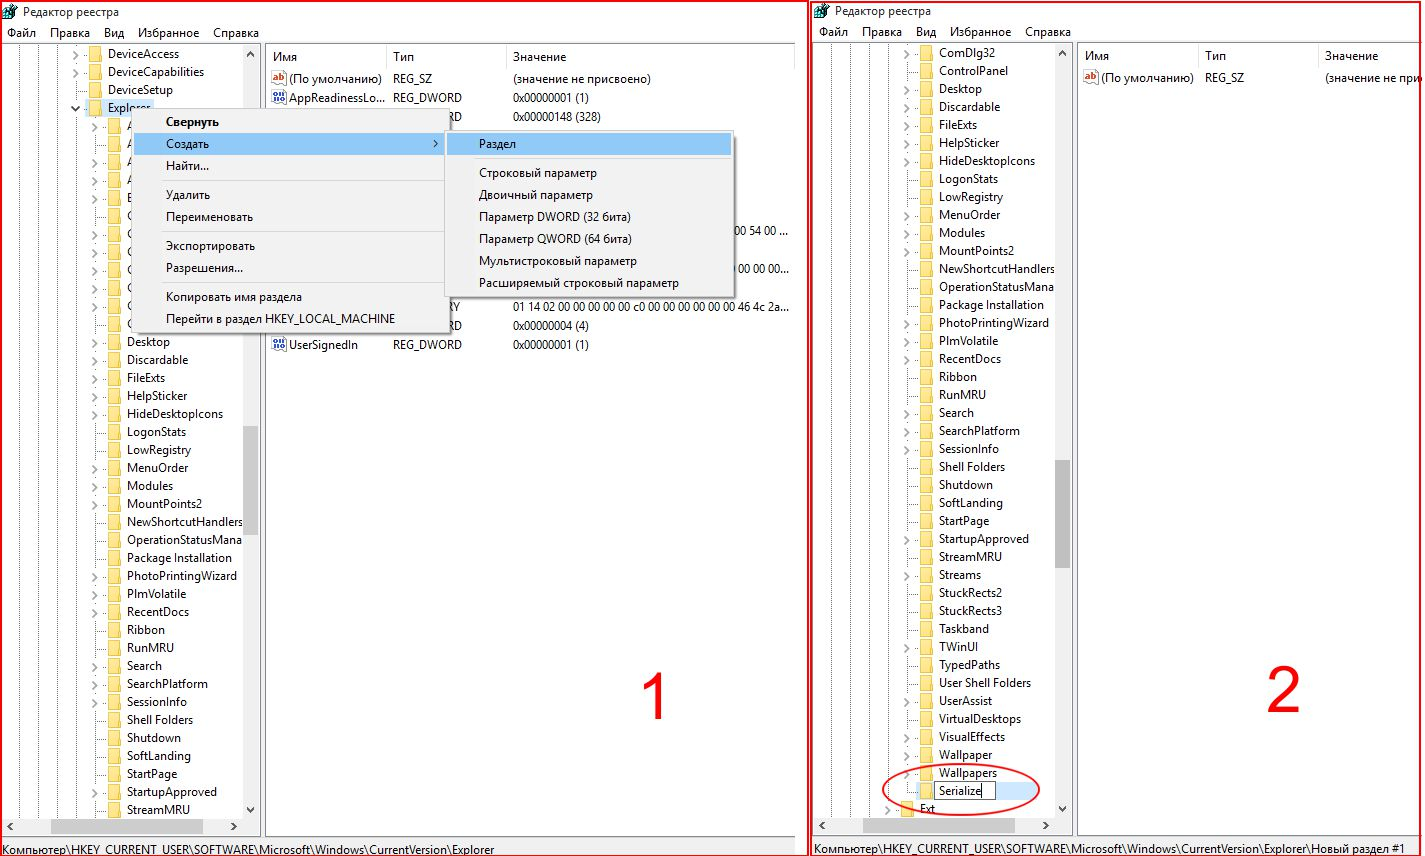 Отрываем раздел реестра HKEY_CURRENT_USER\Software\Microsoft\Windows\CurrentVersion\Explorer\Serialize